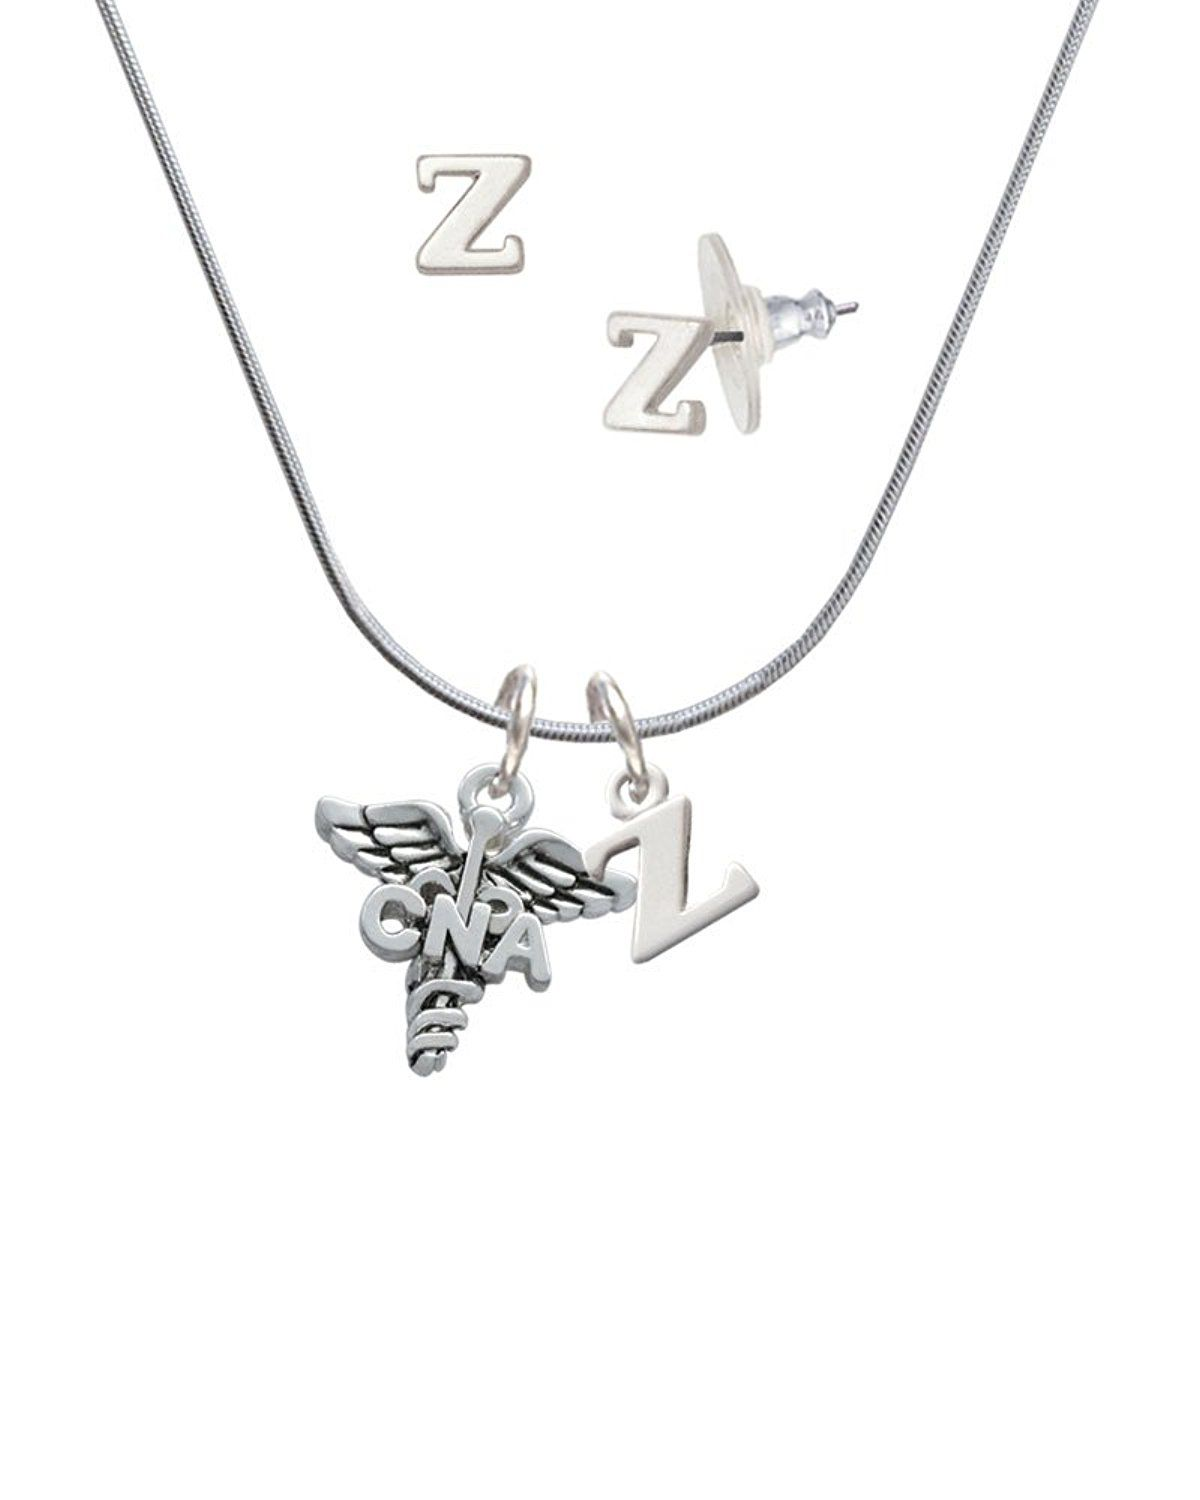 Caduceus cna z initial charm necklace and stud earrings jewelry